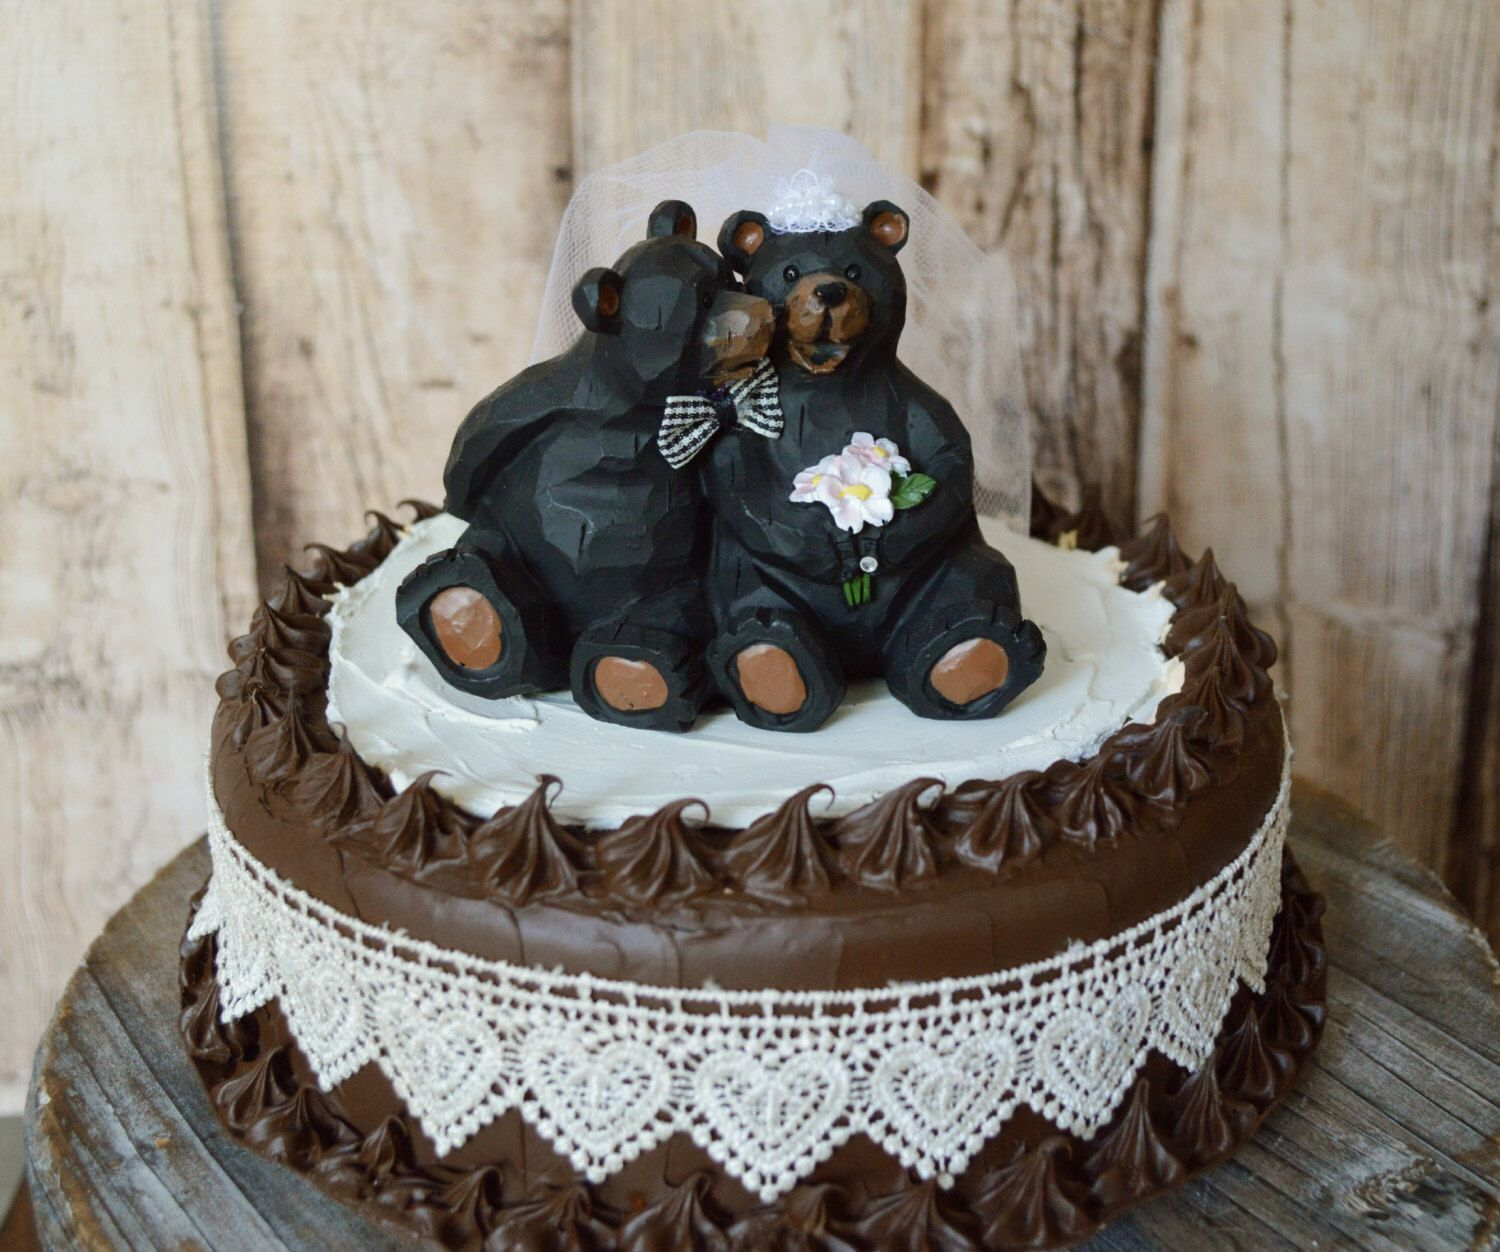 Black bear wedding cake topper country weddings bride and groom bear